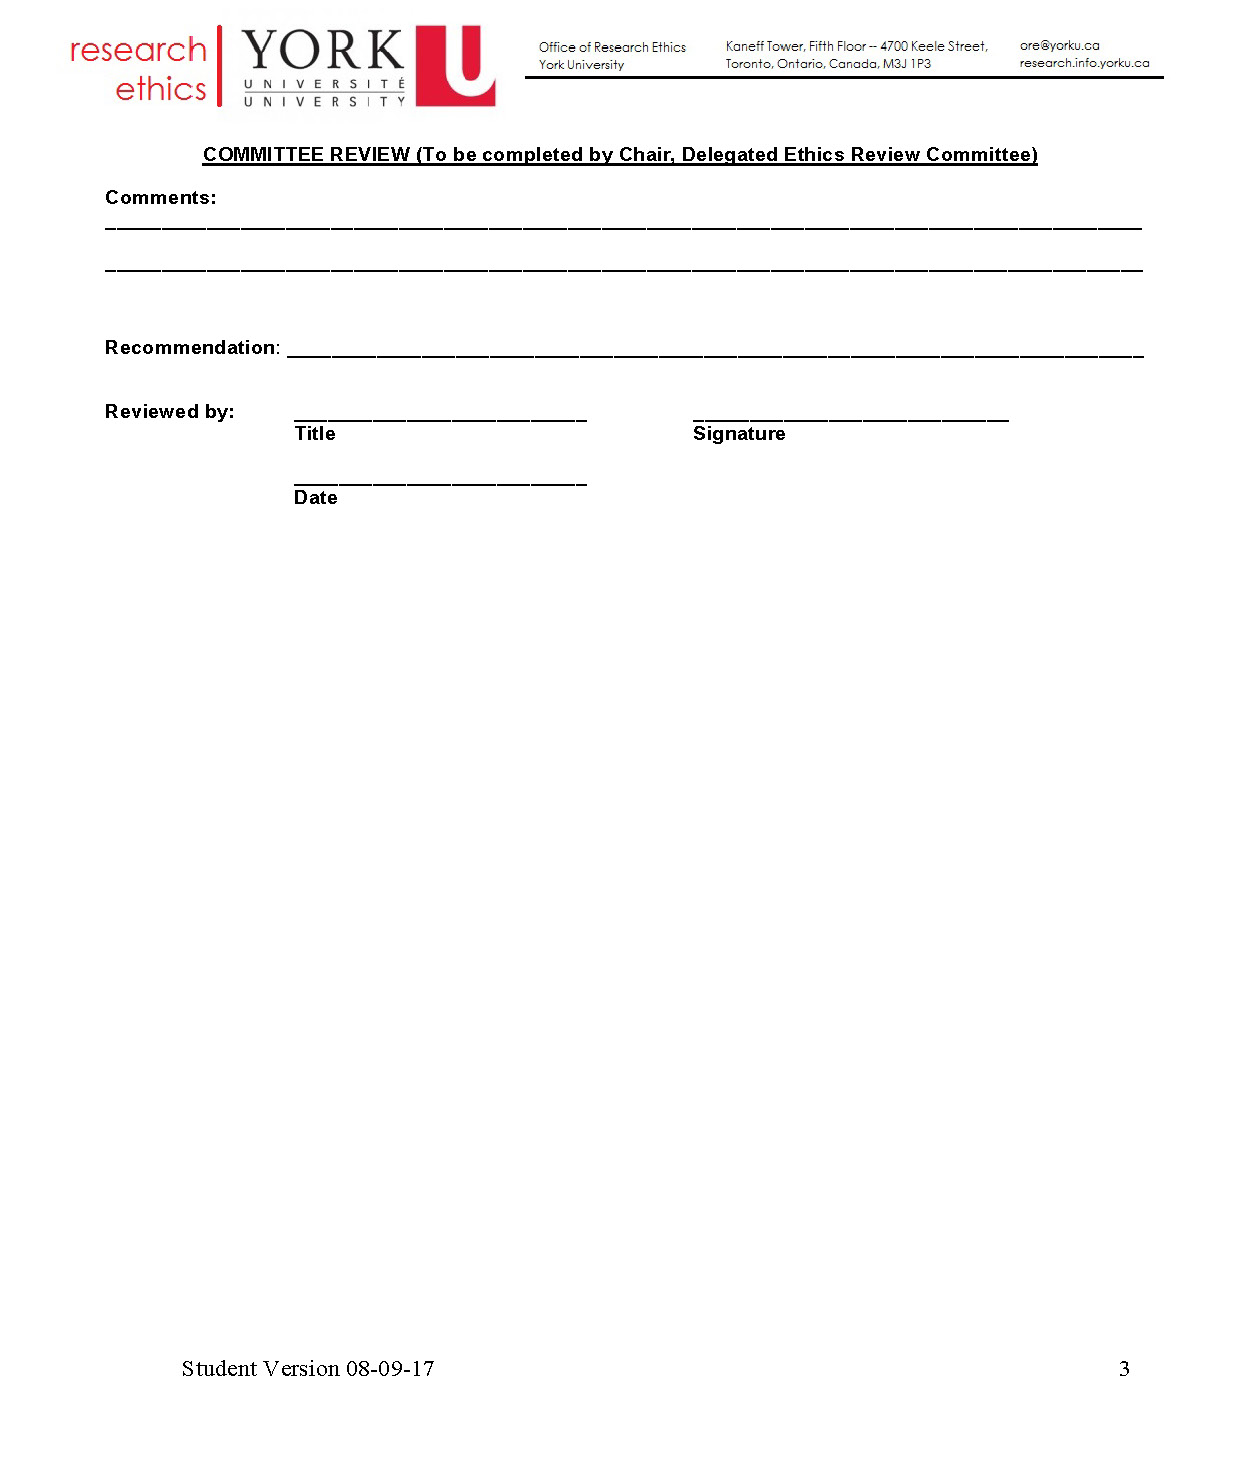 full-size image of the request for renewal of ethic approval form from research ethics page 3